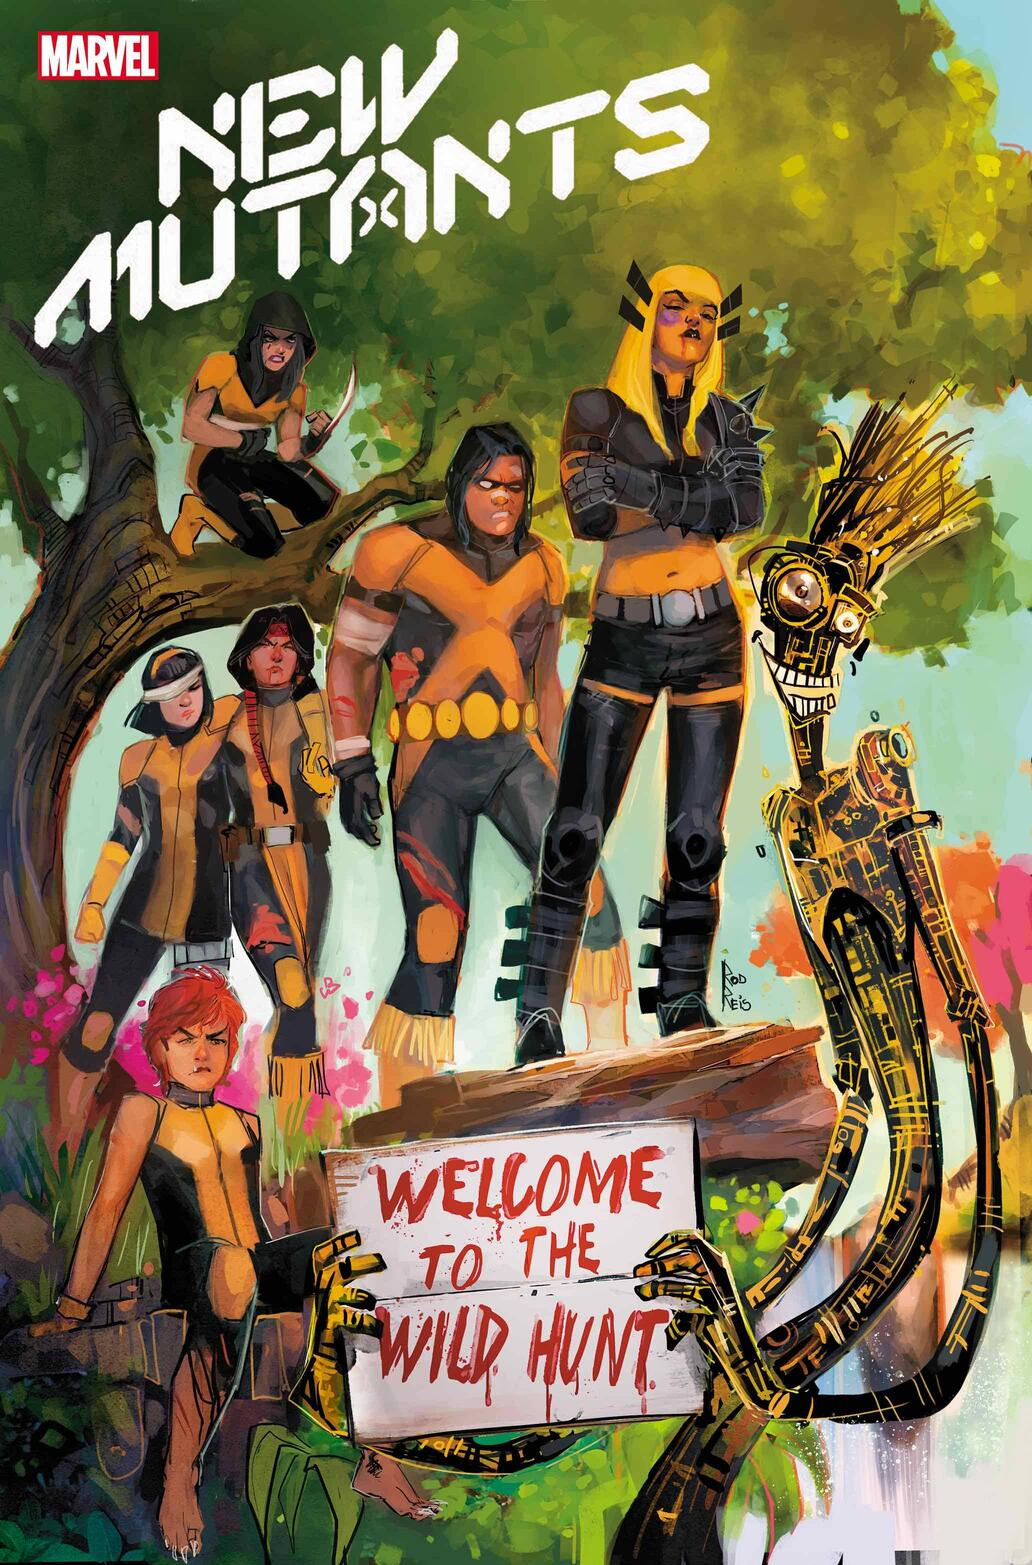 NEW MUTANTS #14 cover by Rod Reis